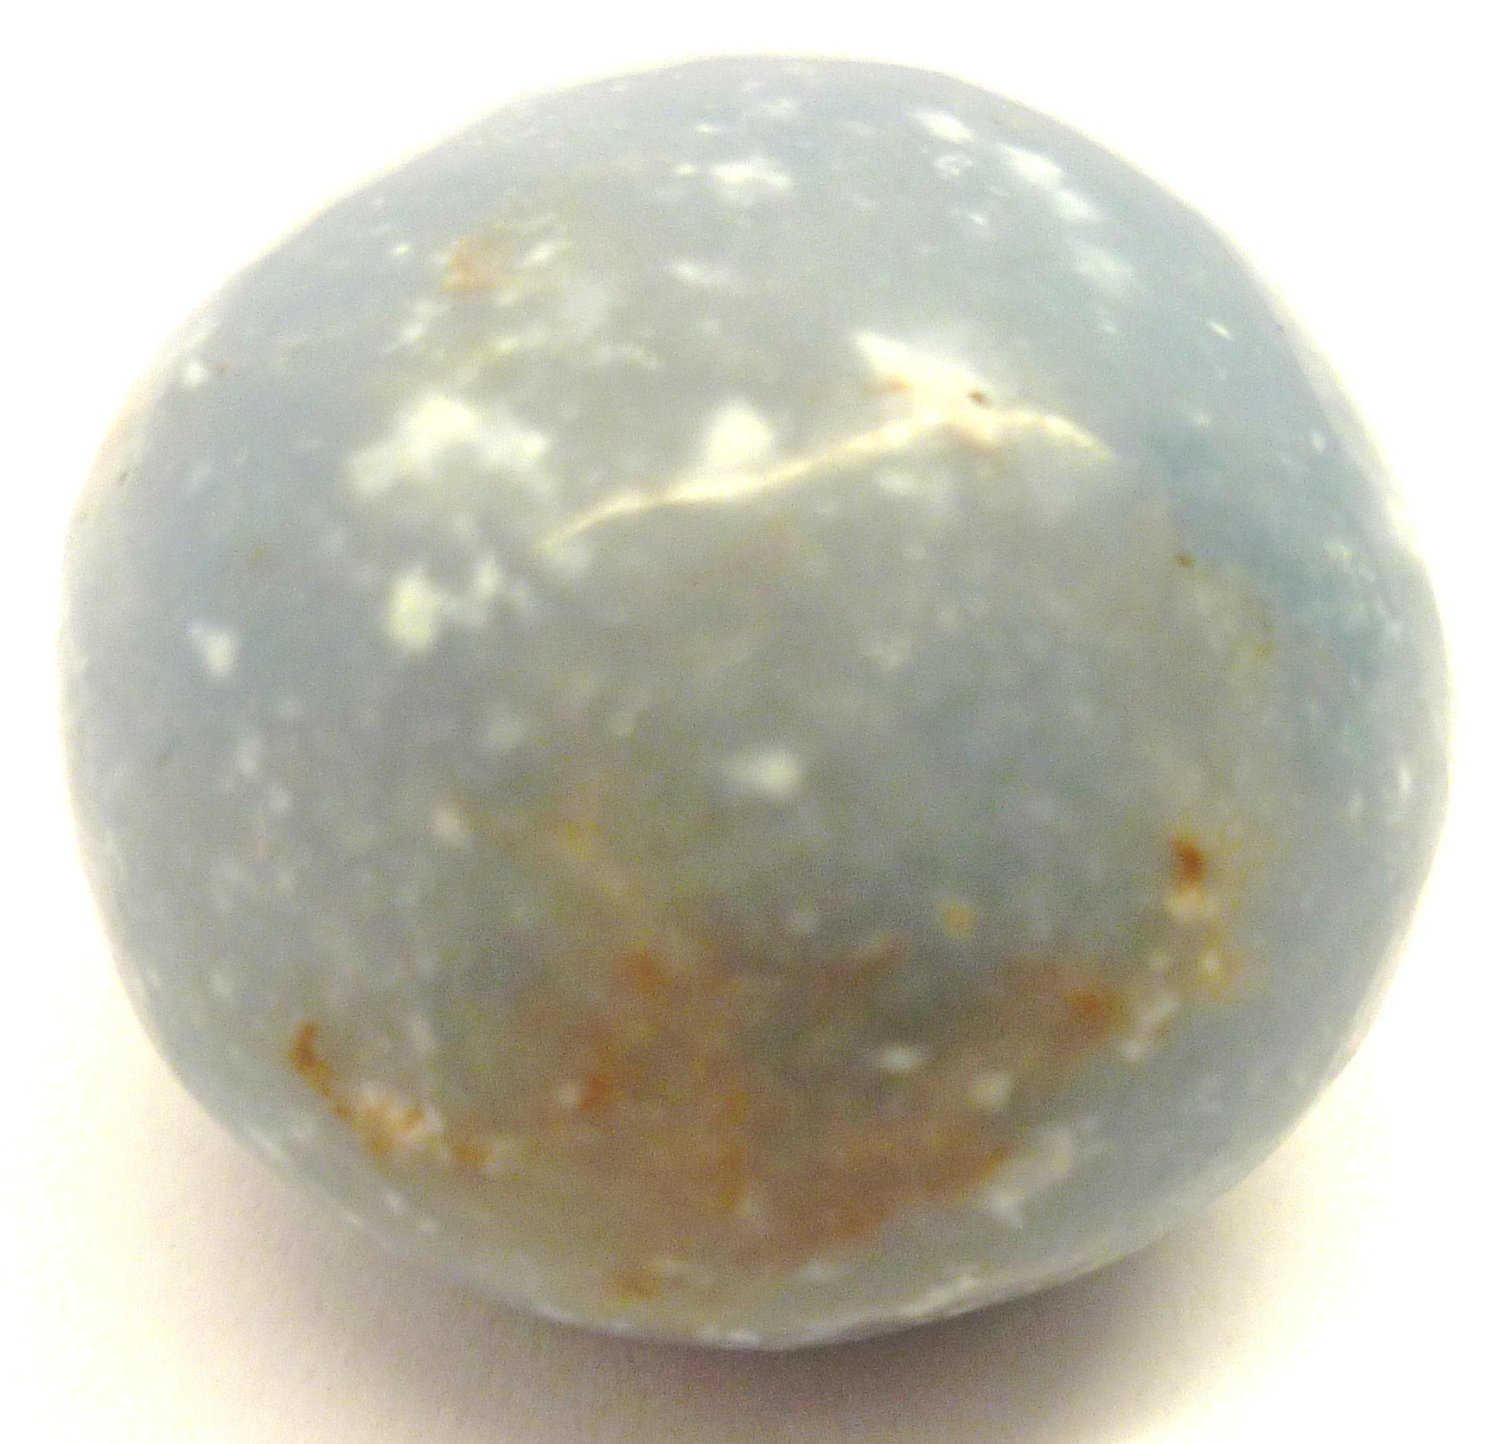 Tumbled Angelite Angelic Reiki Tumble Stone - A Grade Quality Crystal - Helps you connect with angels - Free Postage! by Mystery Mountain